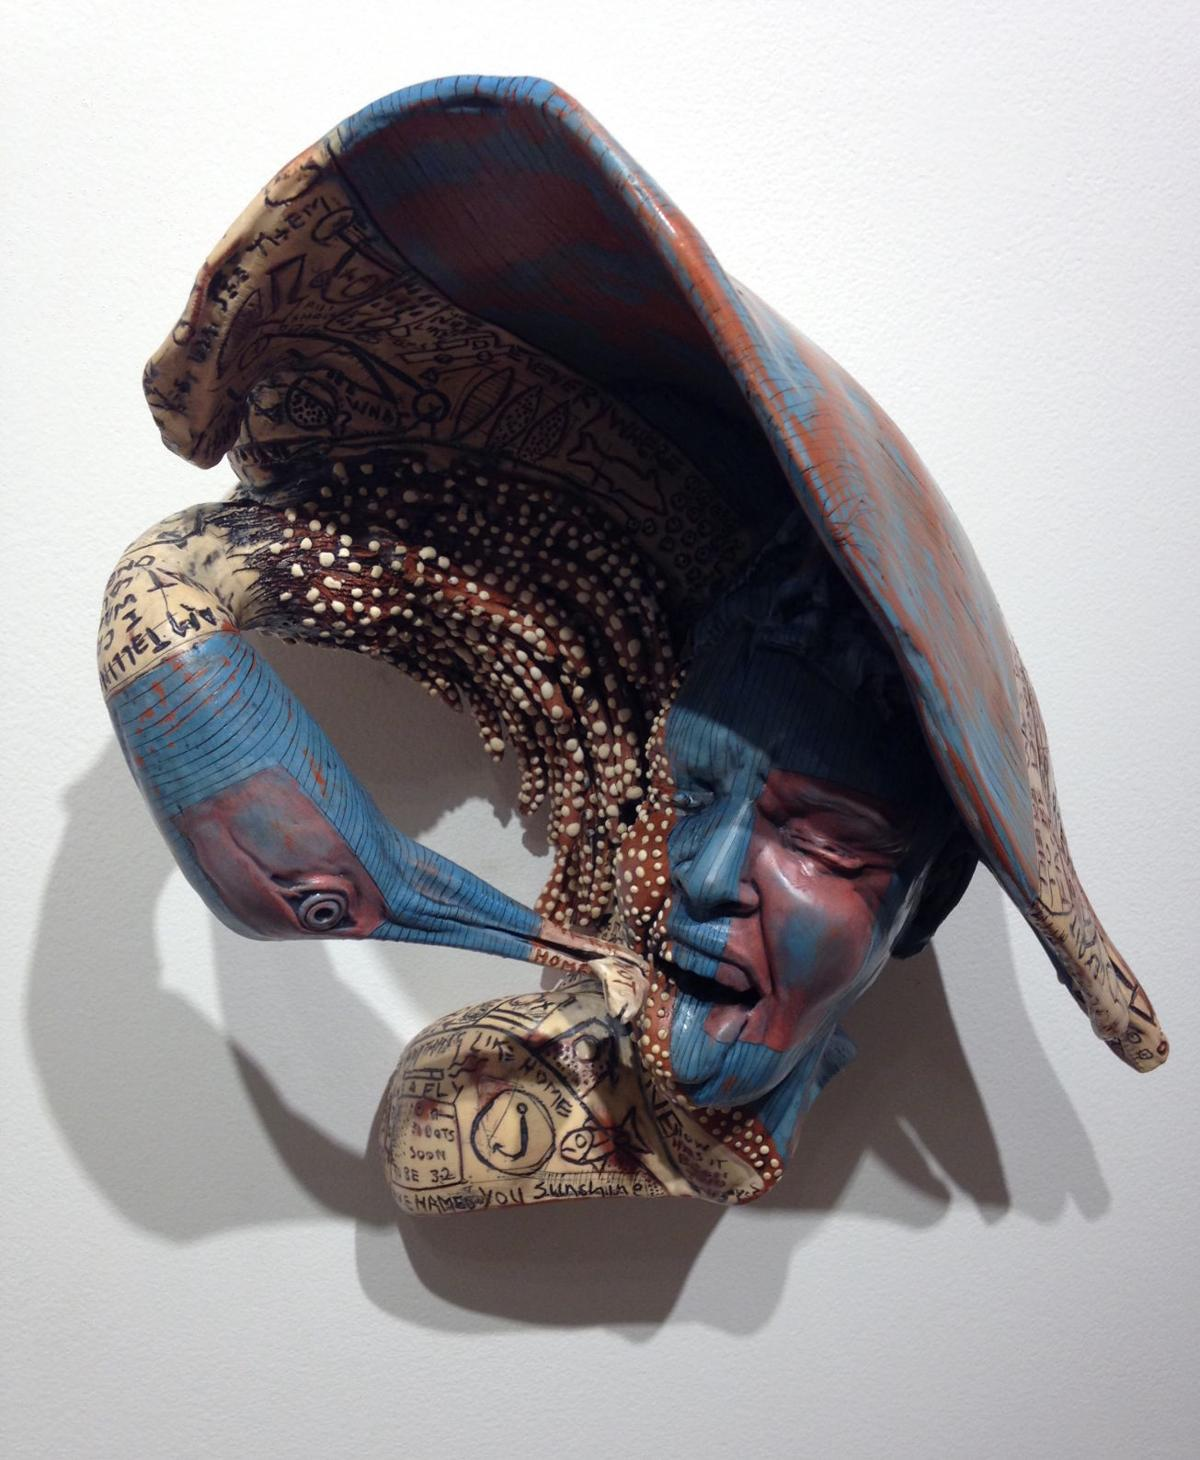 'Bad, Bold, Wiser' exhibit opens at Berry College